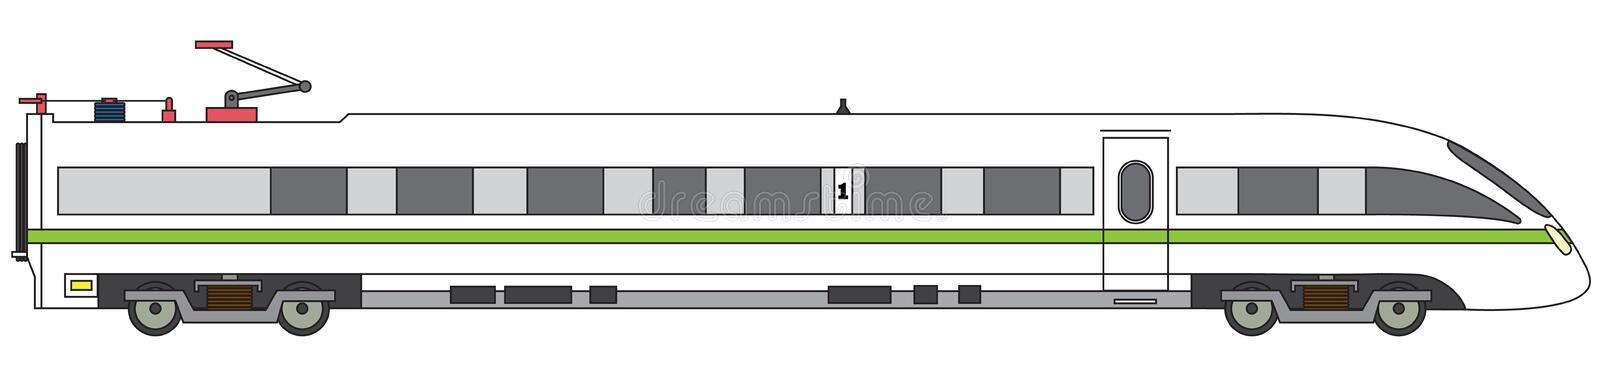 Linear high-speed train vector express railway illustration royalty free illustration